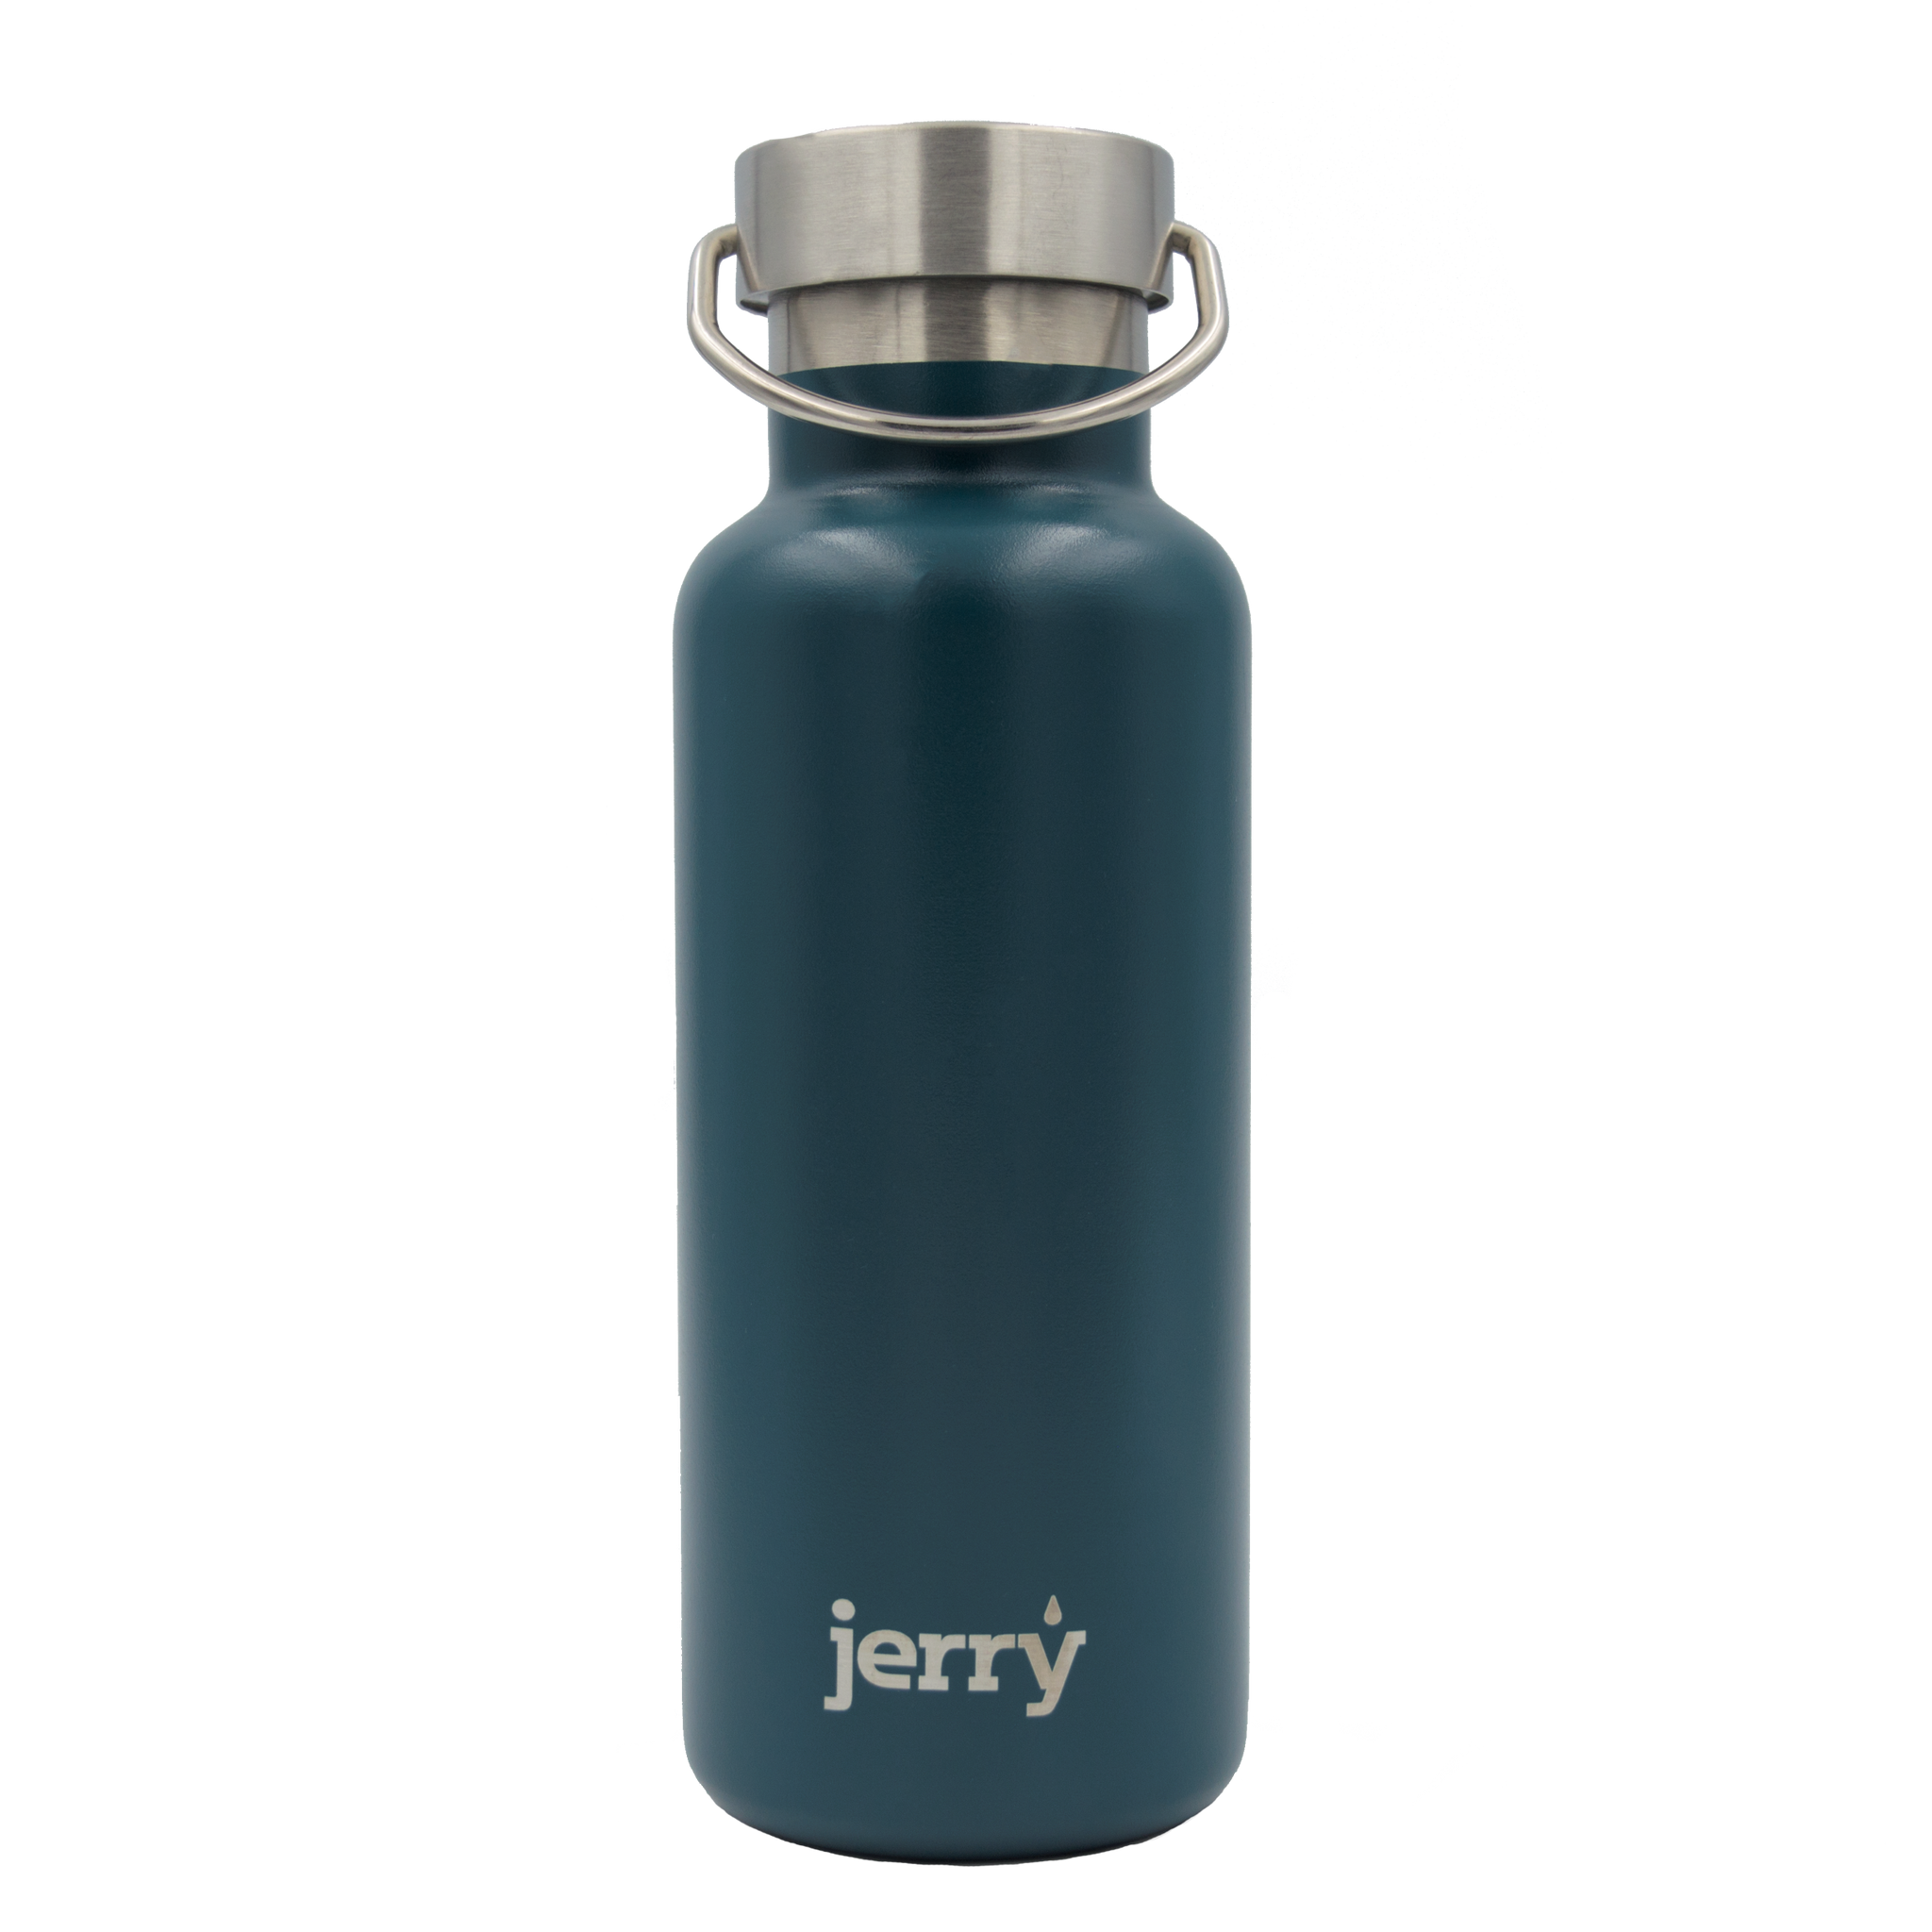 Insulated water bottle - teal - profits to waterfall charity